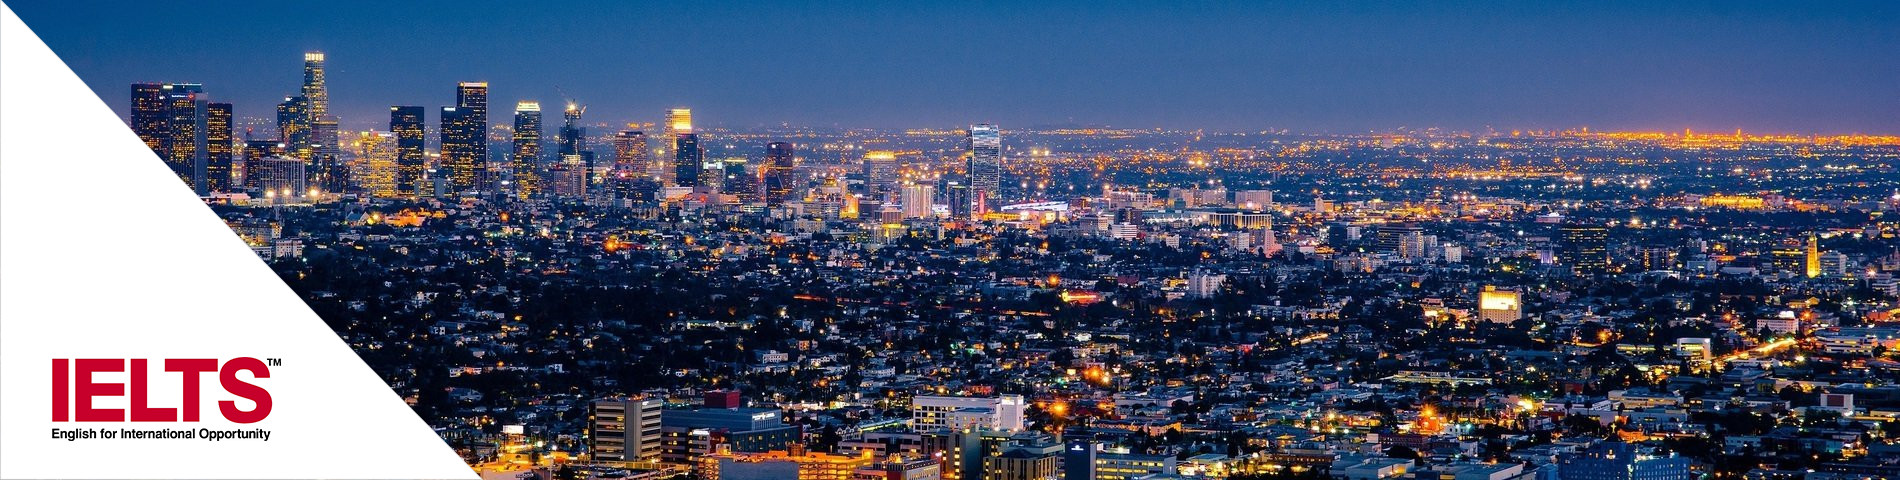 Los Angeles - IELTS